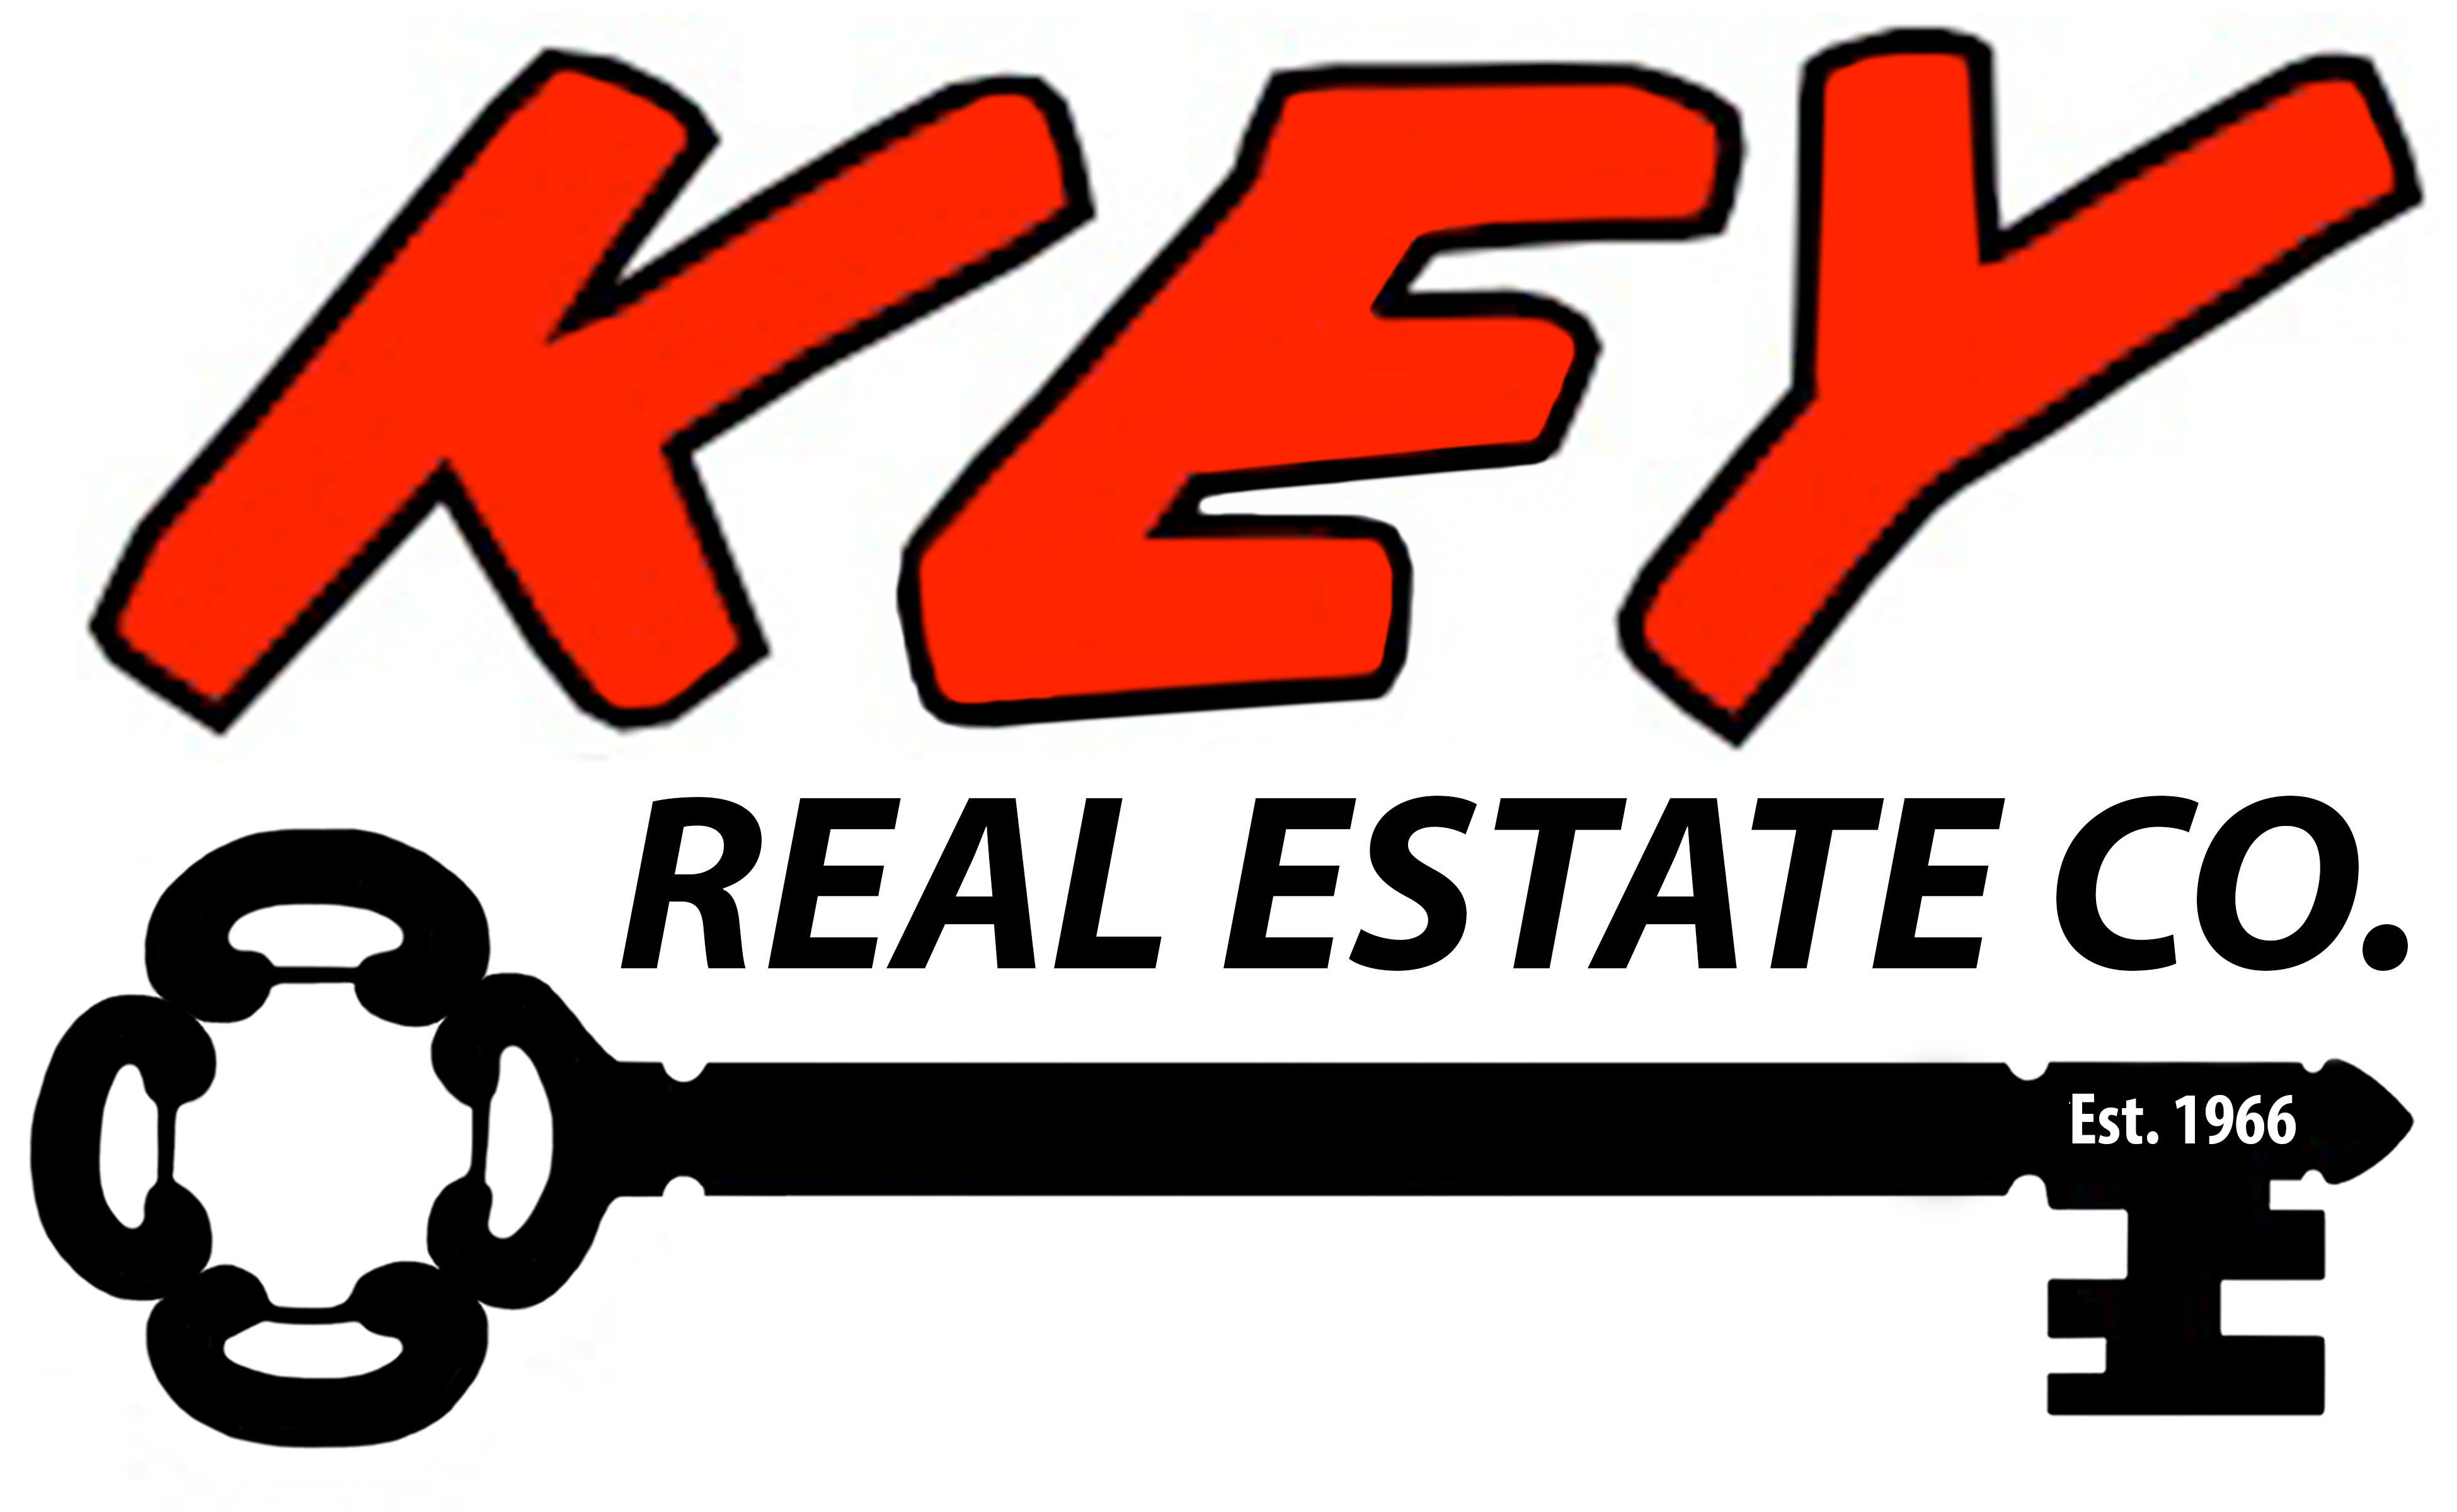 We hold the KEY to your real estate needs!